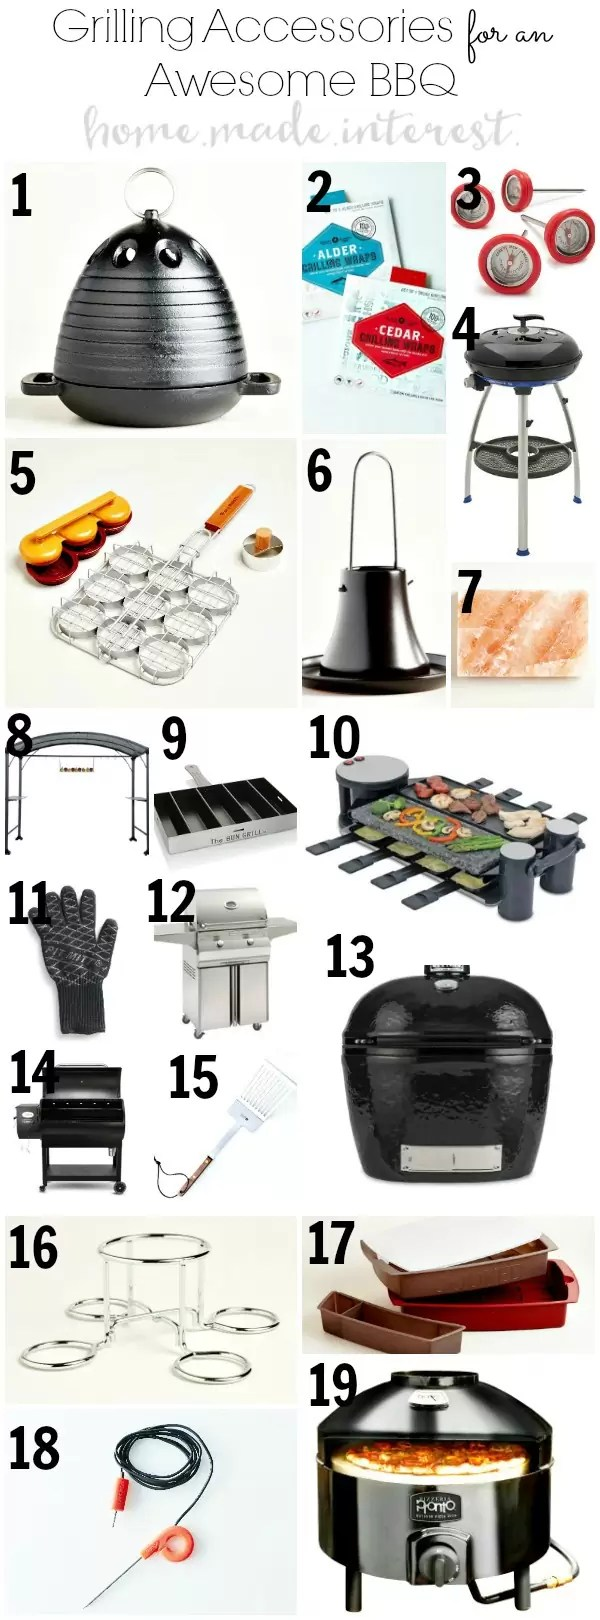 Grilling Accessories for an Awesome BBQ for the grill master in your life. Perfect for Father's Day gift if he loves to grill. Any grilling lover will appreciate these gift ideas. Great summer hostess gifts too.